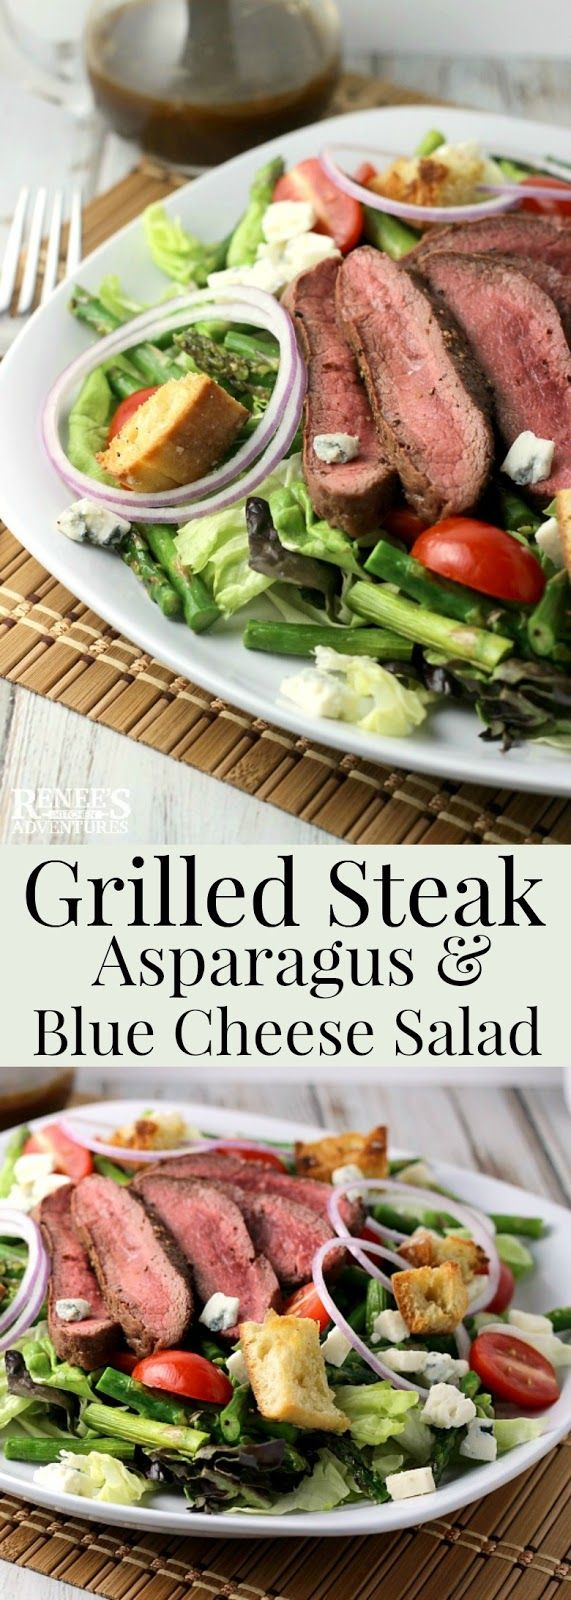 Grilled Steak, Asparagus, and Blue Cheese Salad   Renee's Kitchen Adventures - easy main course salad recipe for steak, fresh asparagus, blue cheese, tomatoes, red onions, and ciabatta croutons. Perfect spring dinner recipe.